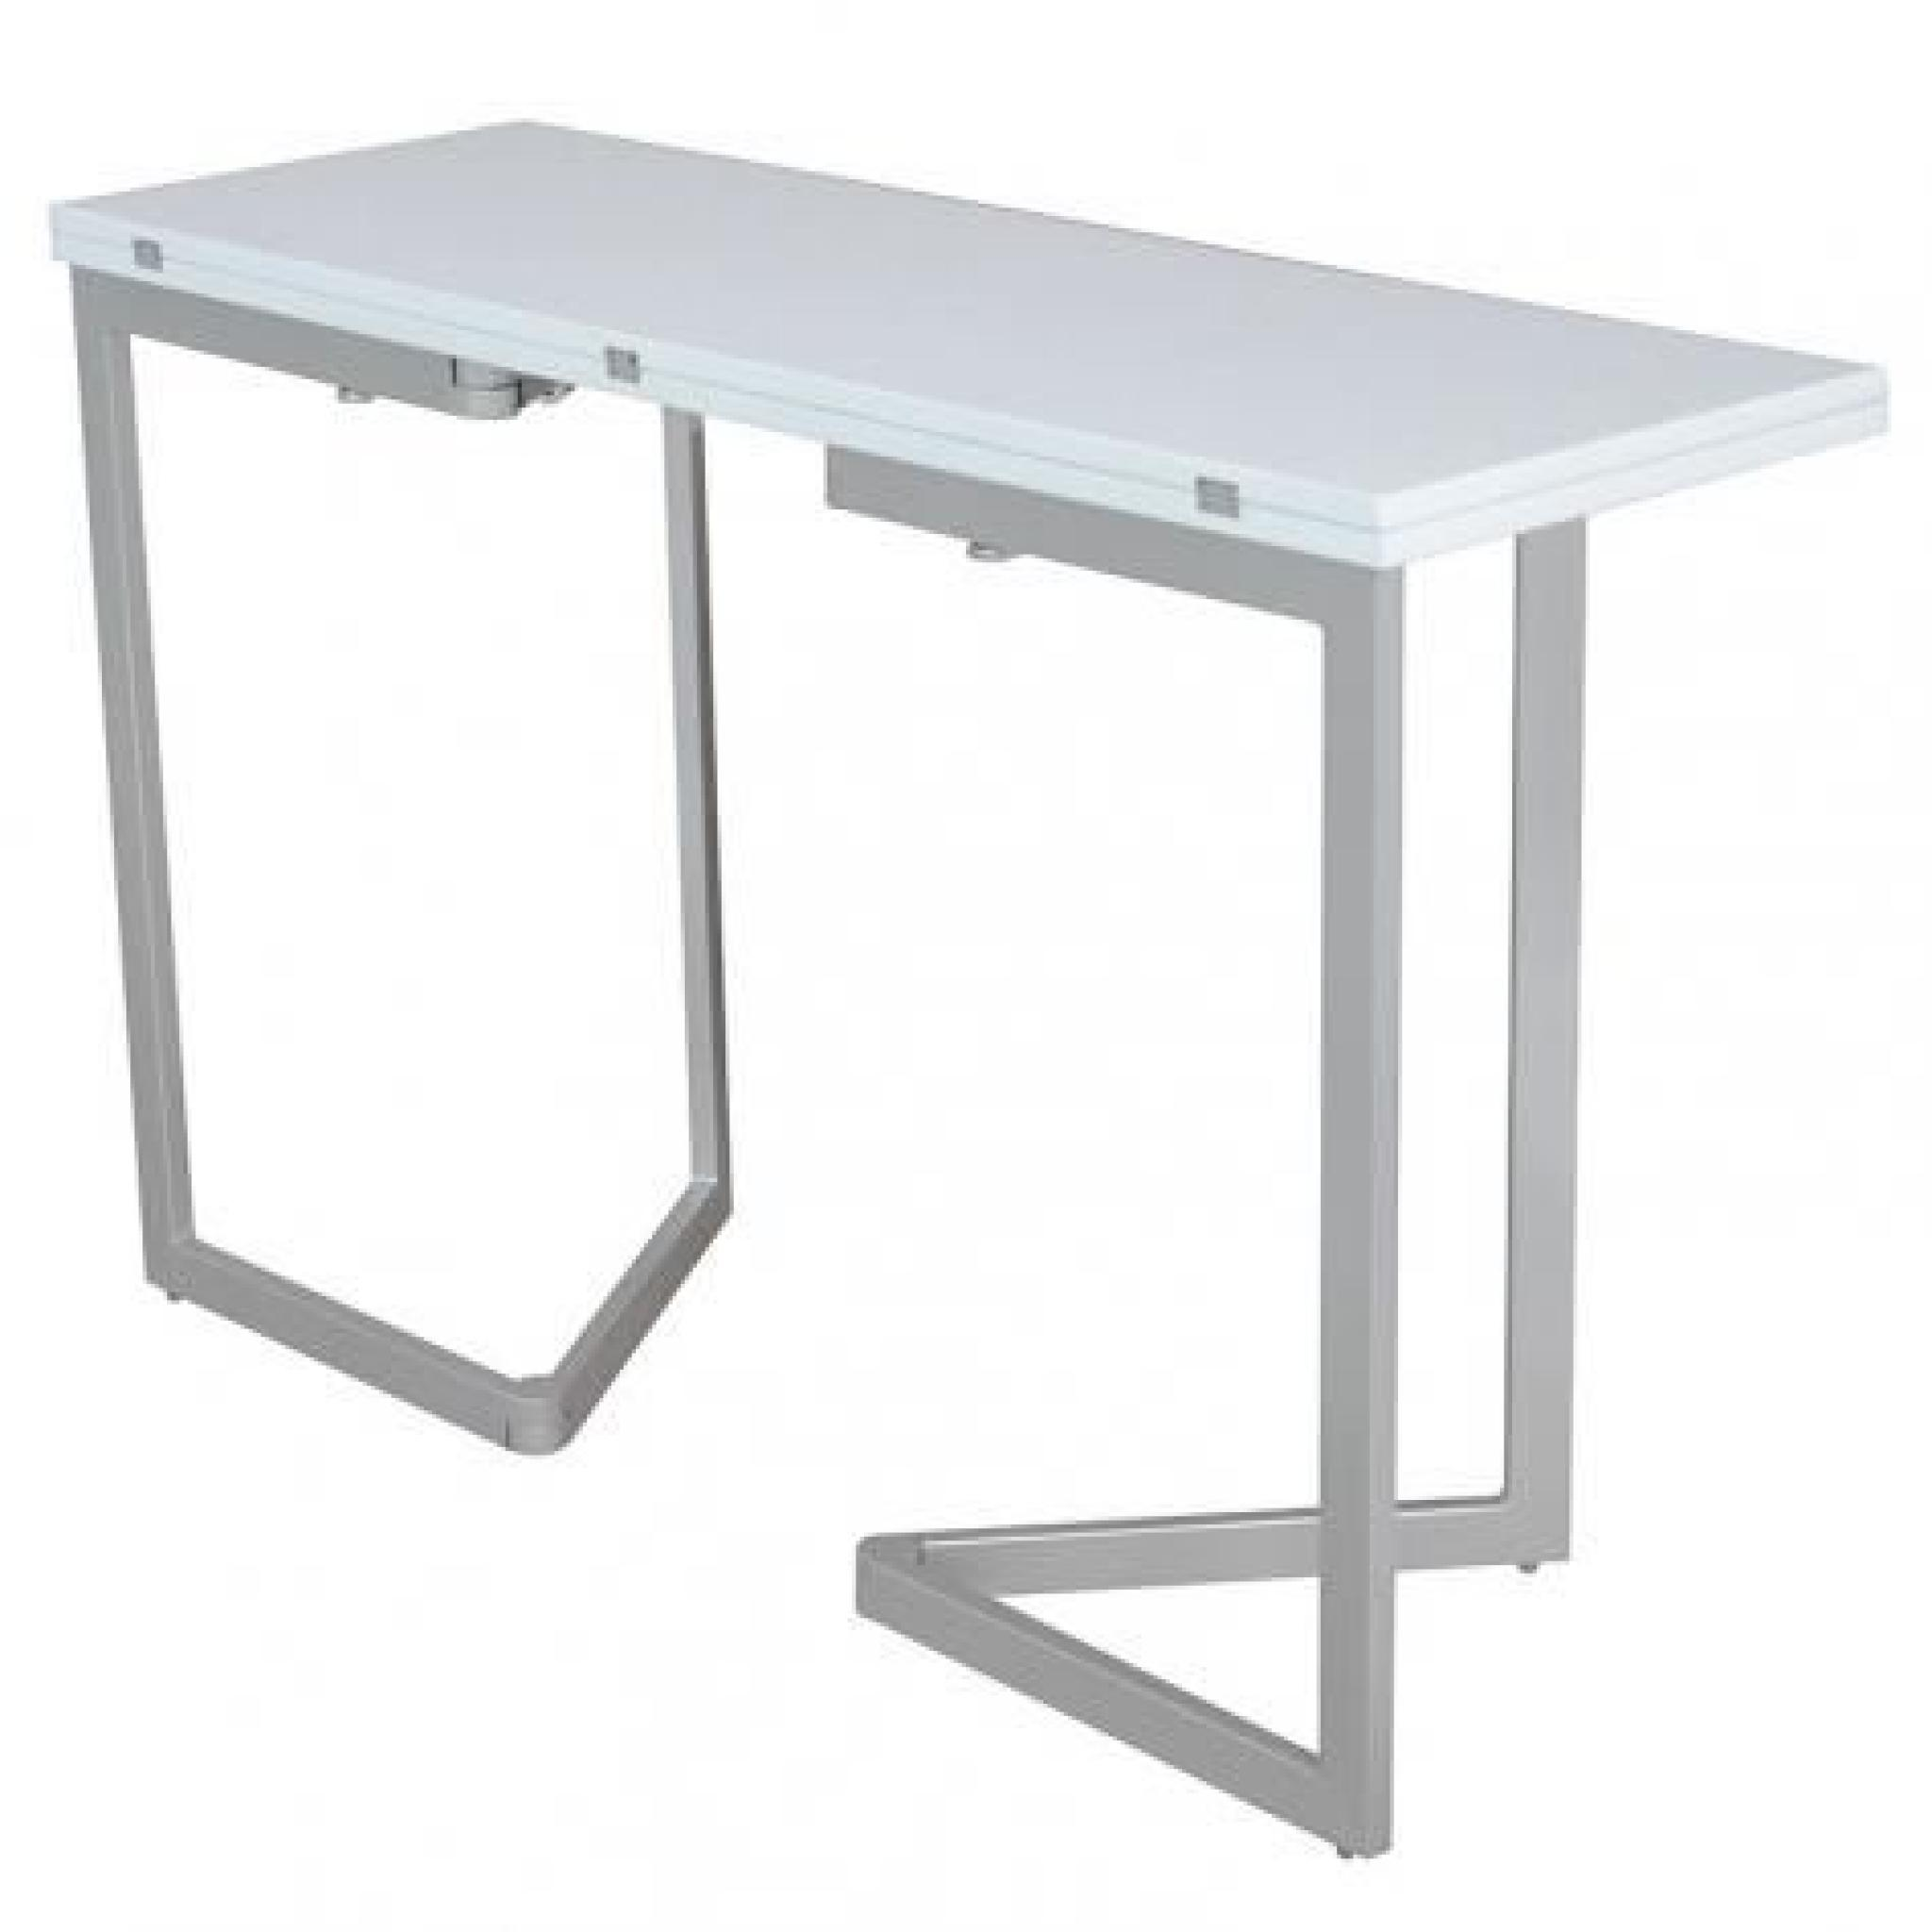 Table extensible blanche laquee 28 images table for Table a manger blanche extensible